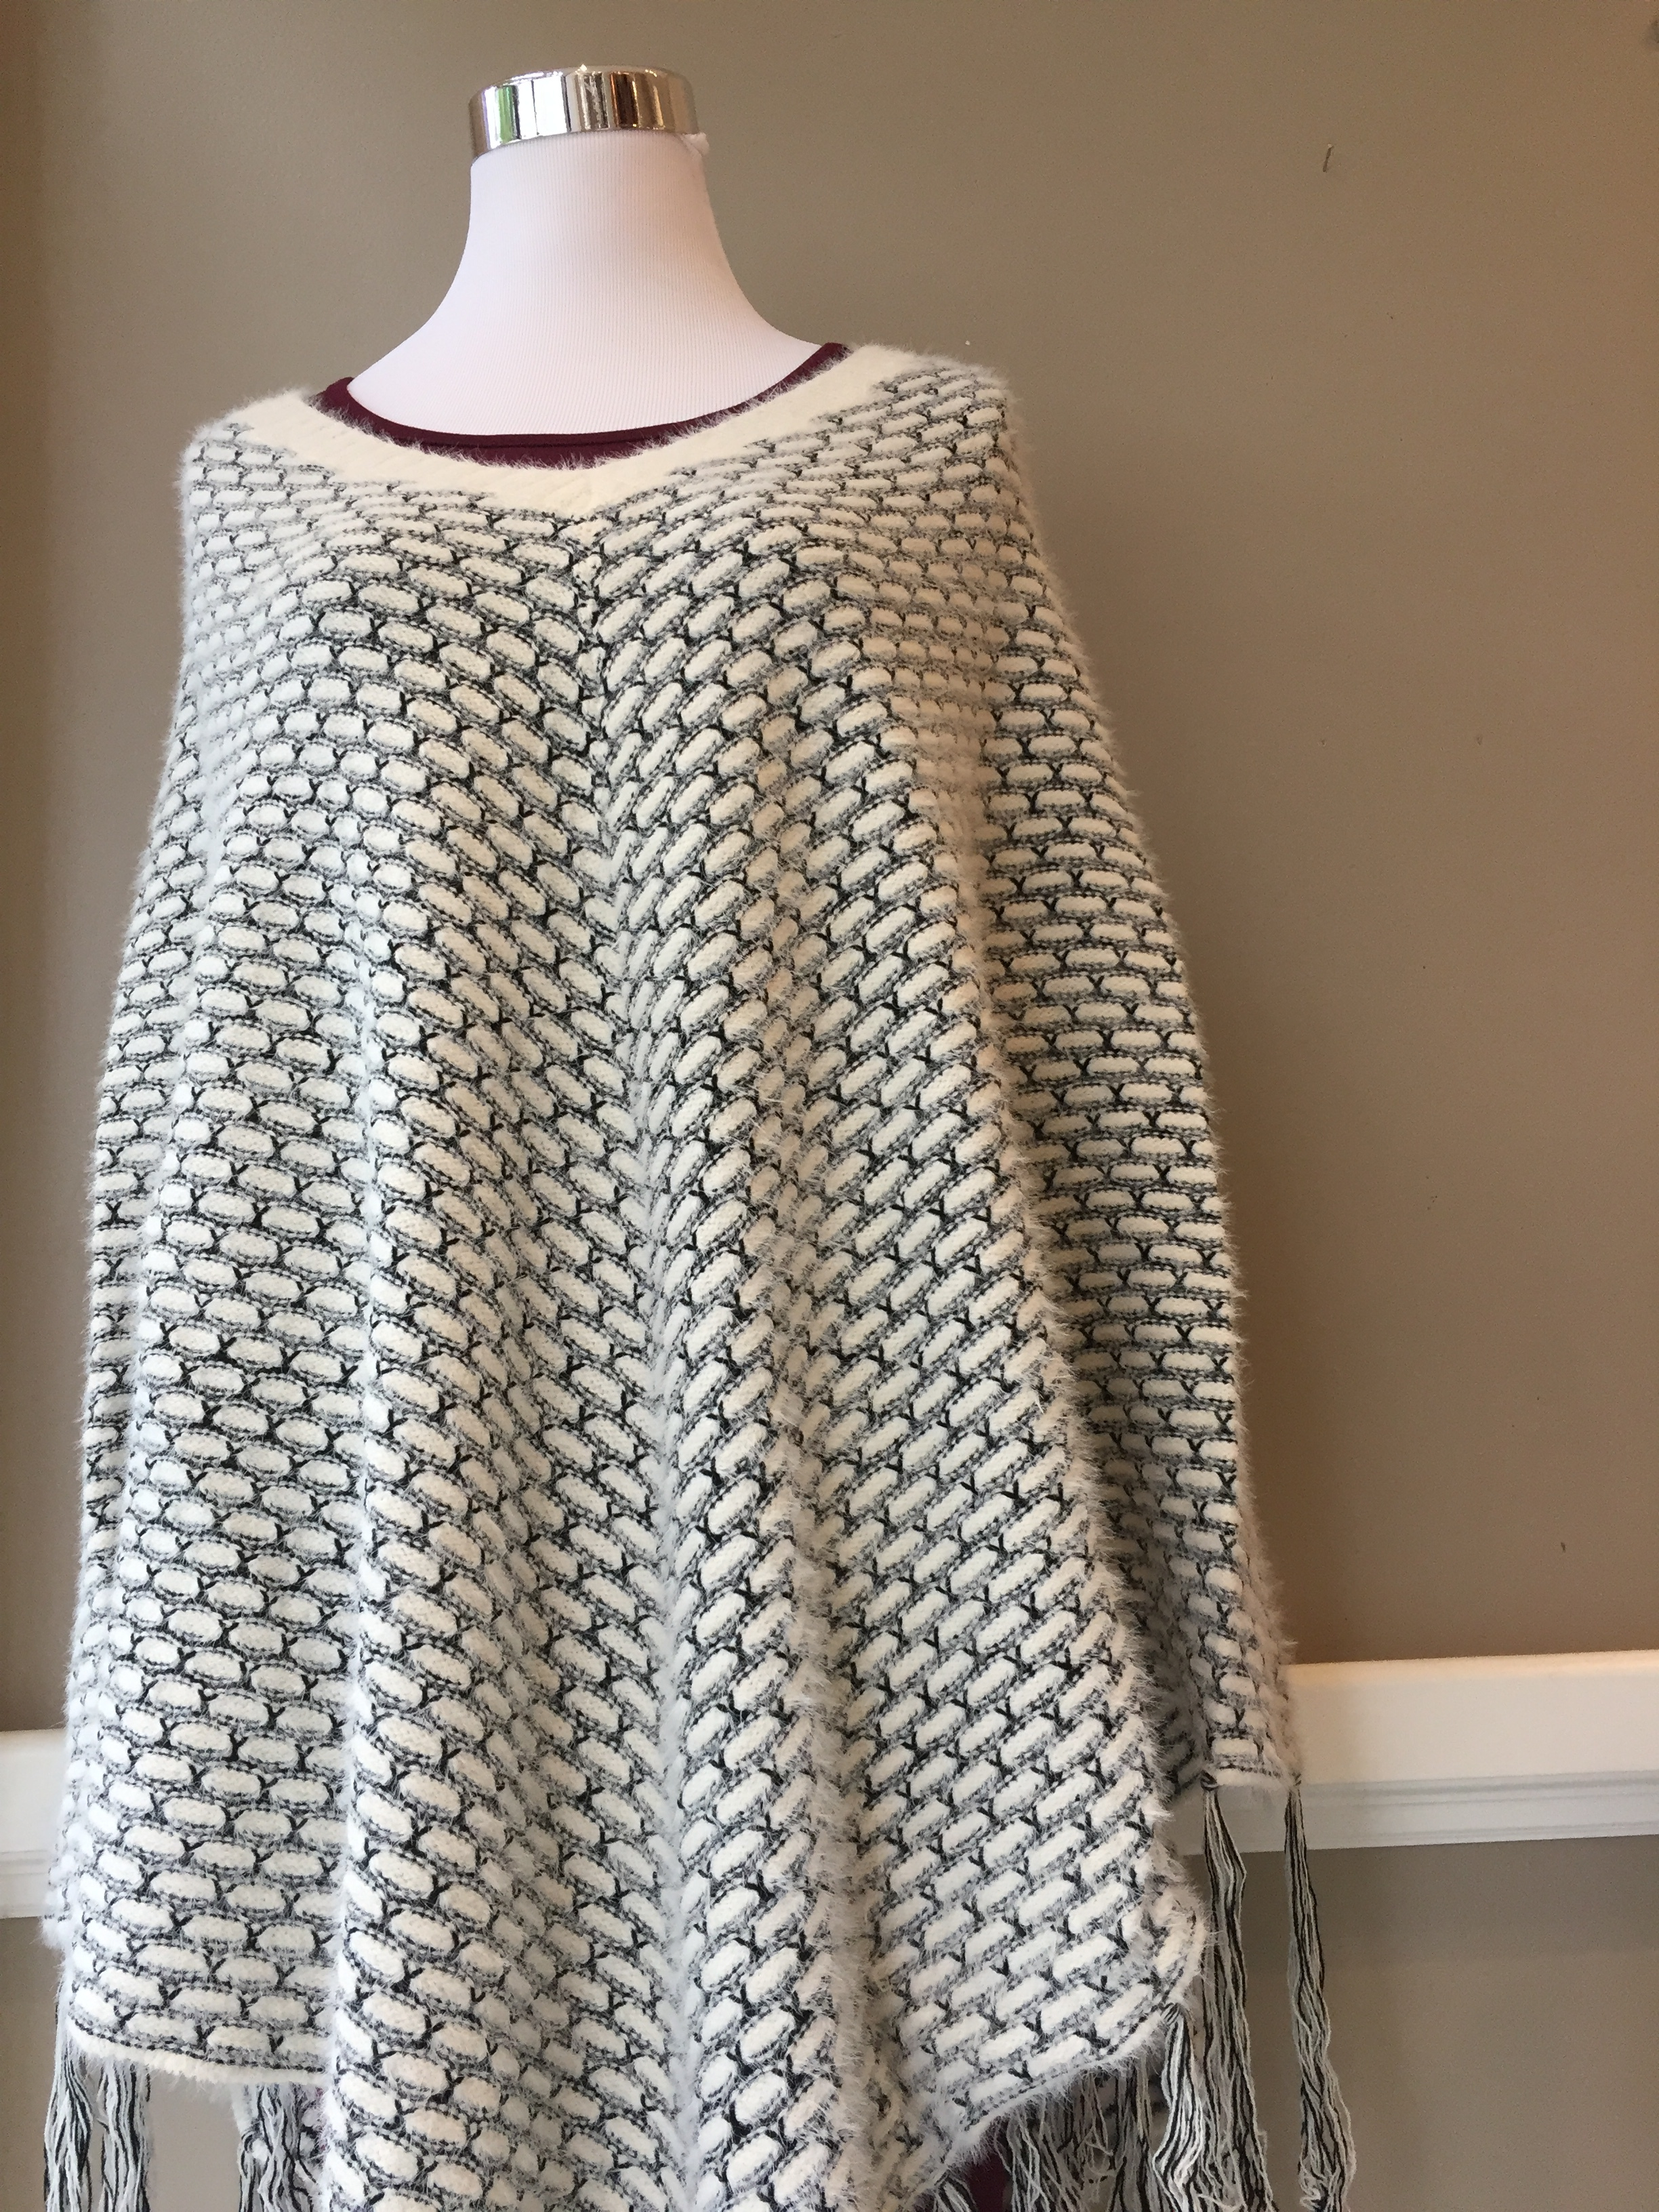 Black and white poncho ($38, also in navy)